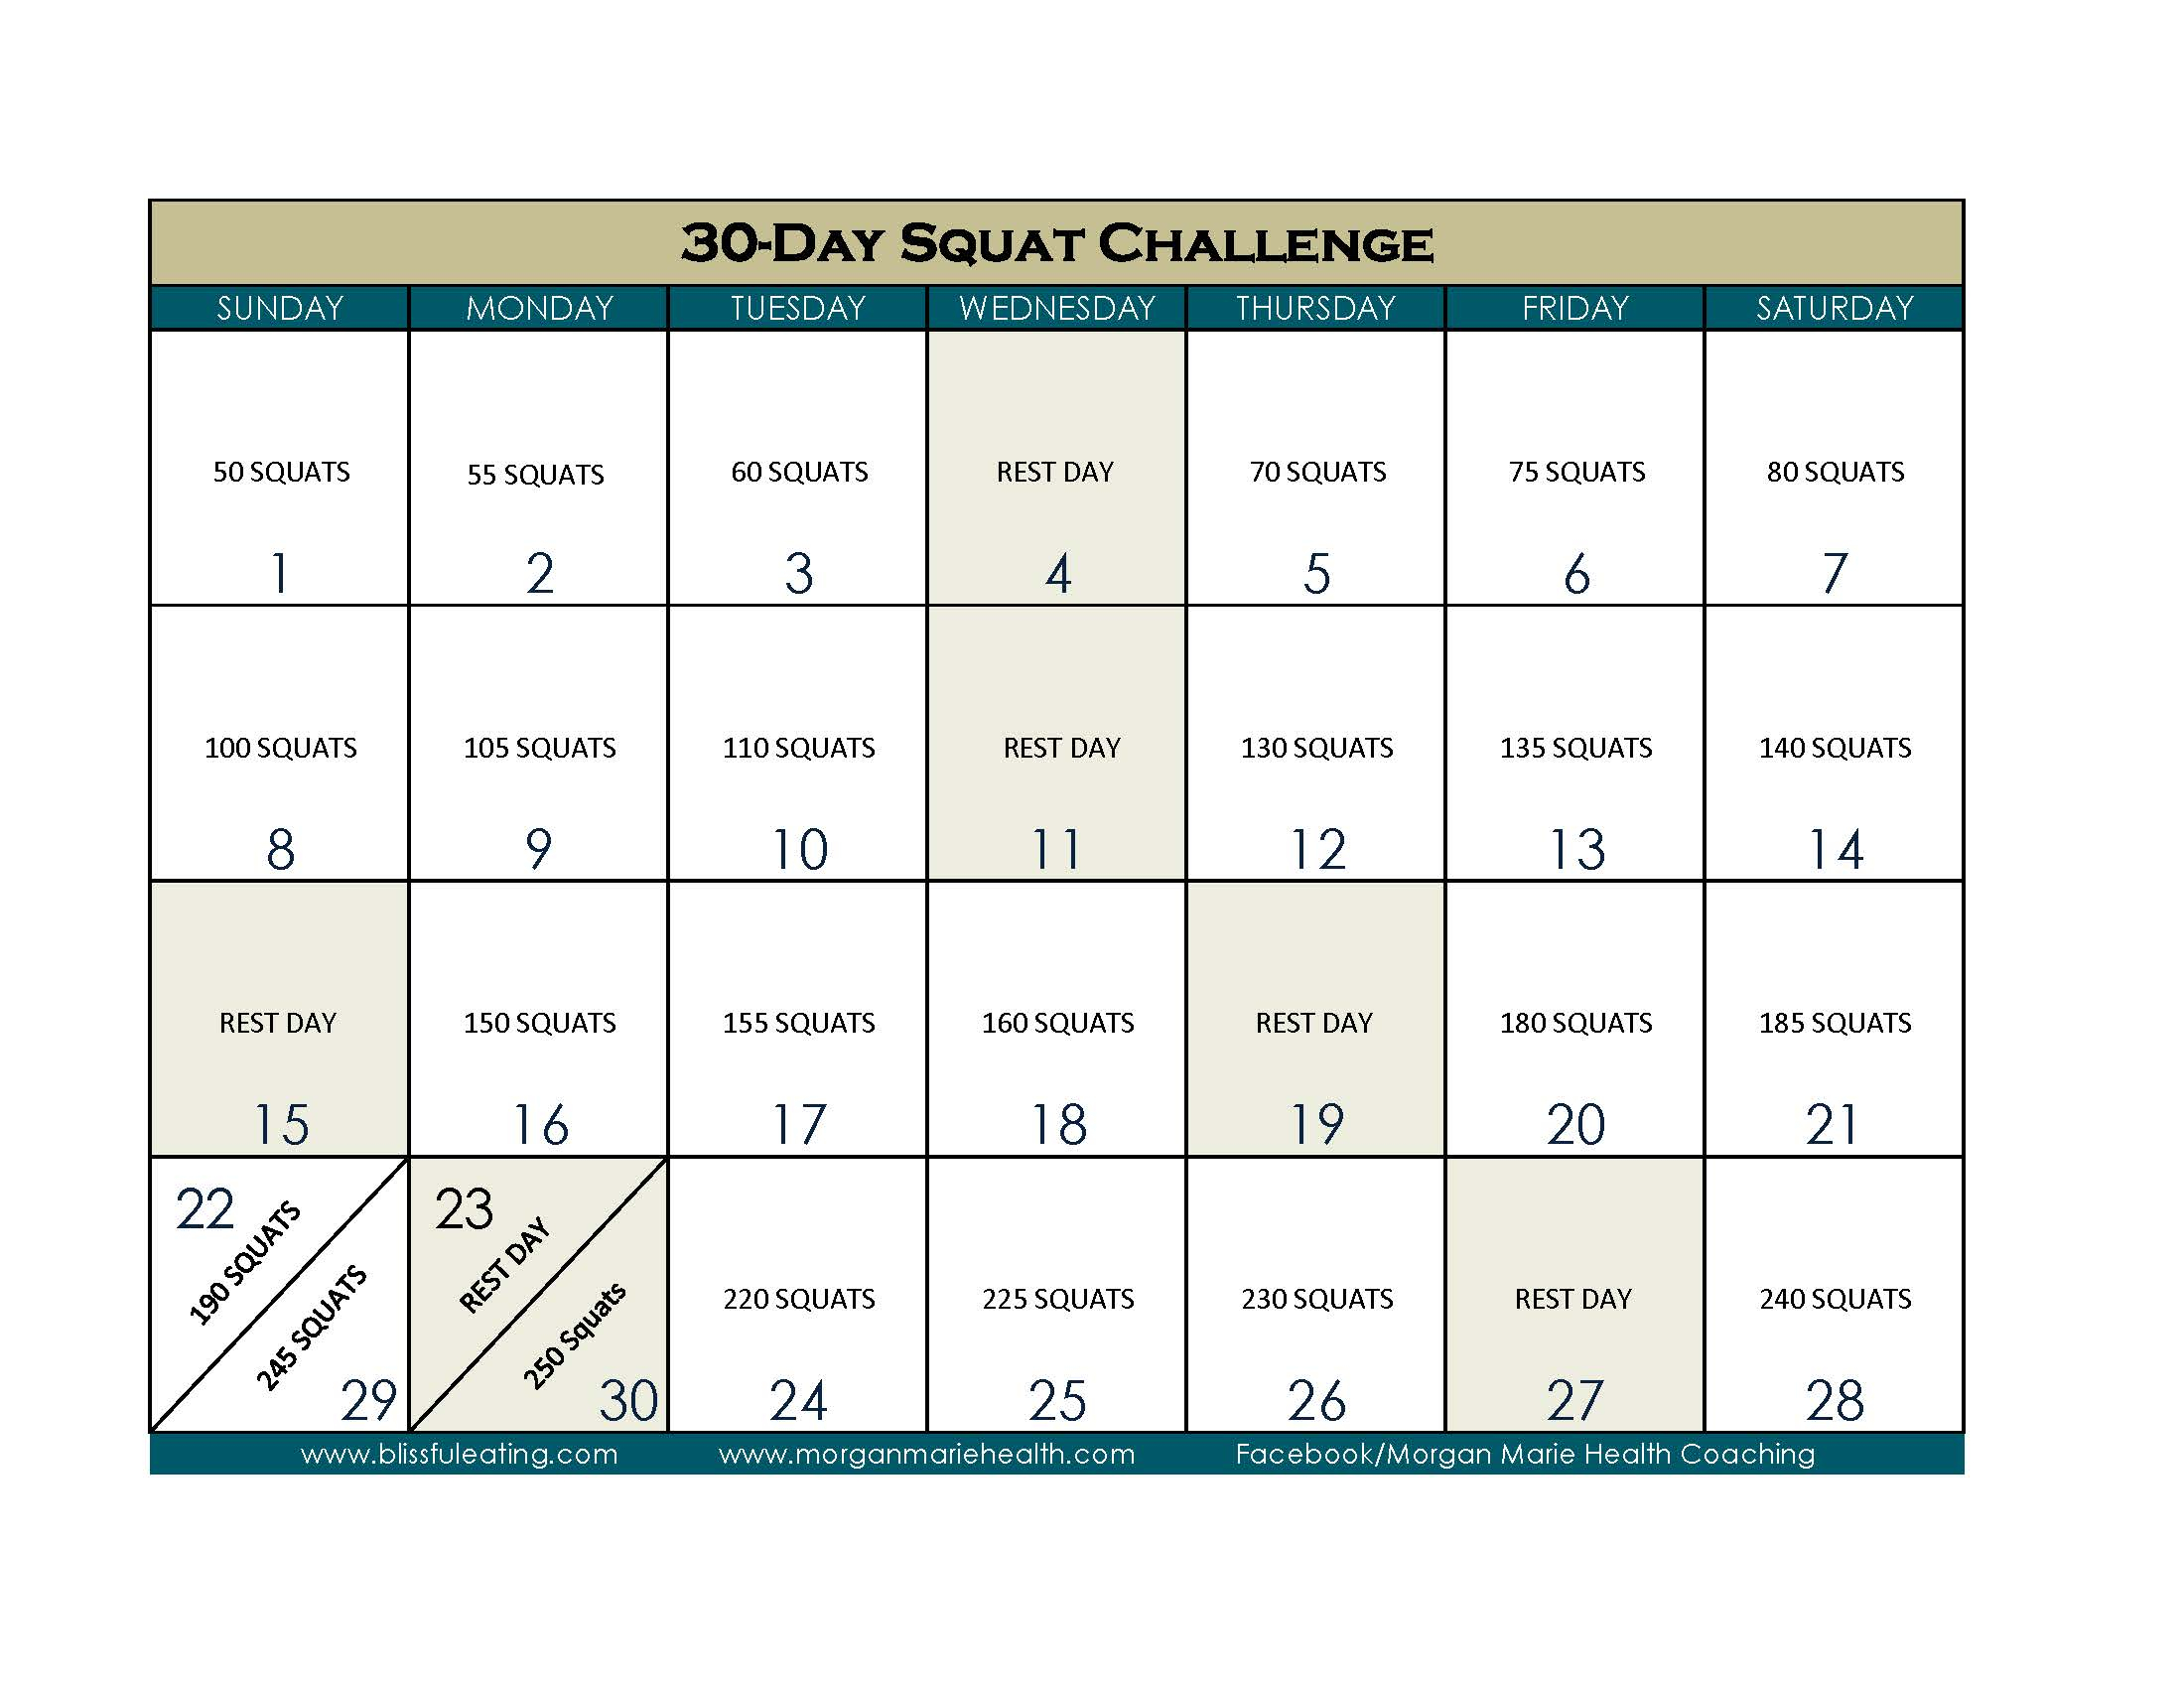 30 Day Squat Challenge Calendar Print Out Within 30 Day Squat Calender